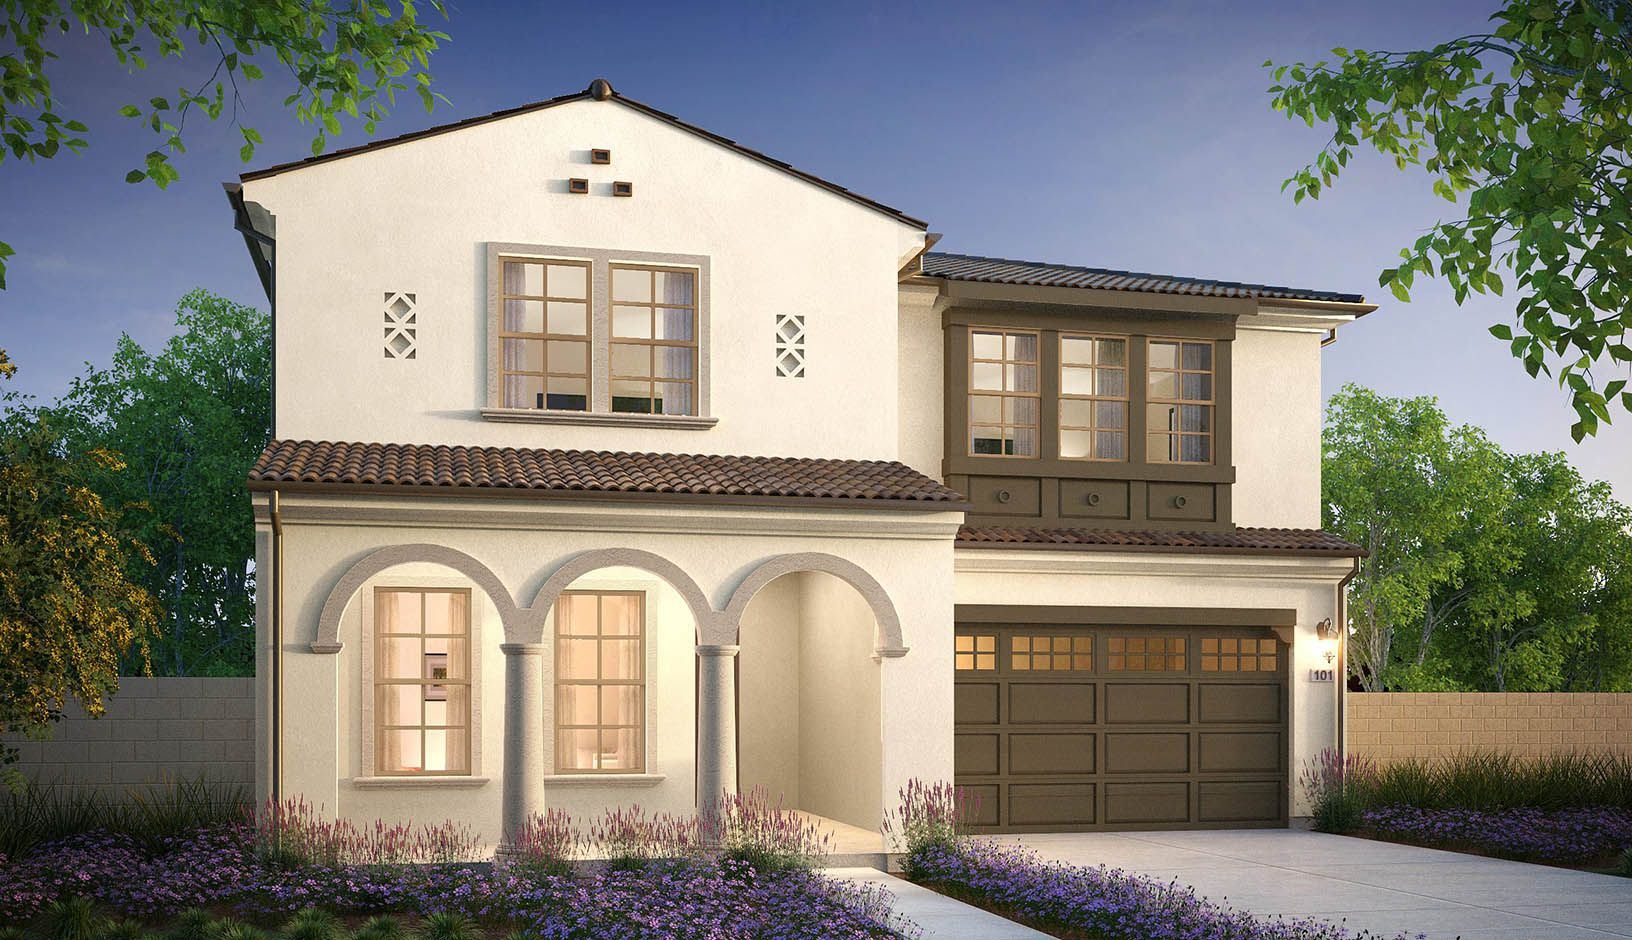 Single Family for Sale at Bradford At Rosedale - Residence 3 742 East Orange Blossom Way Azusa, California 91702 United States